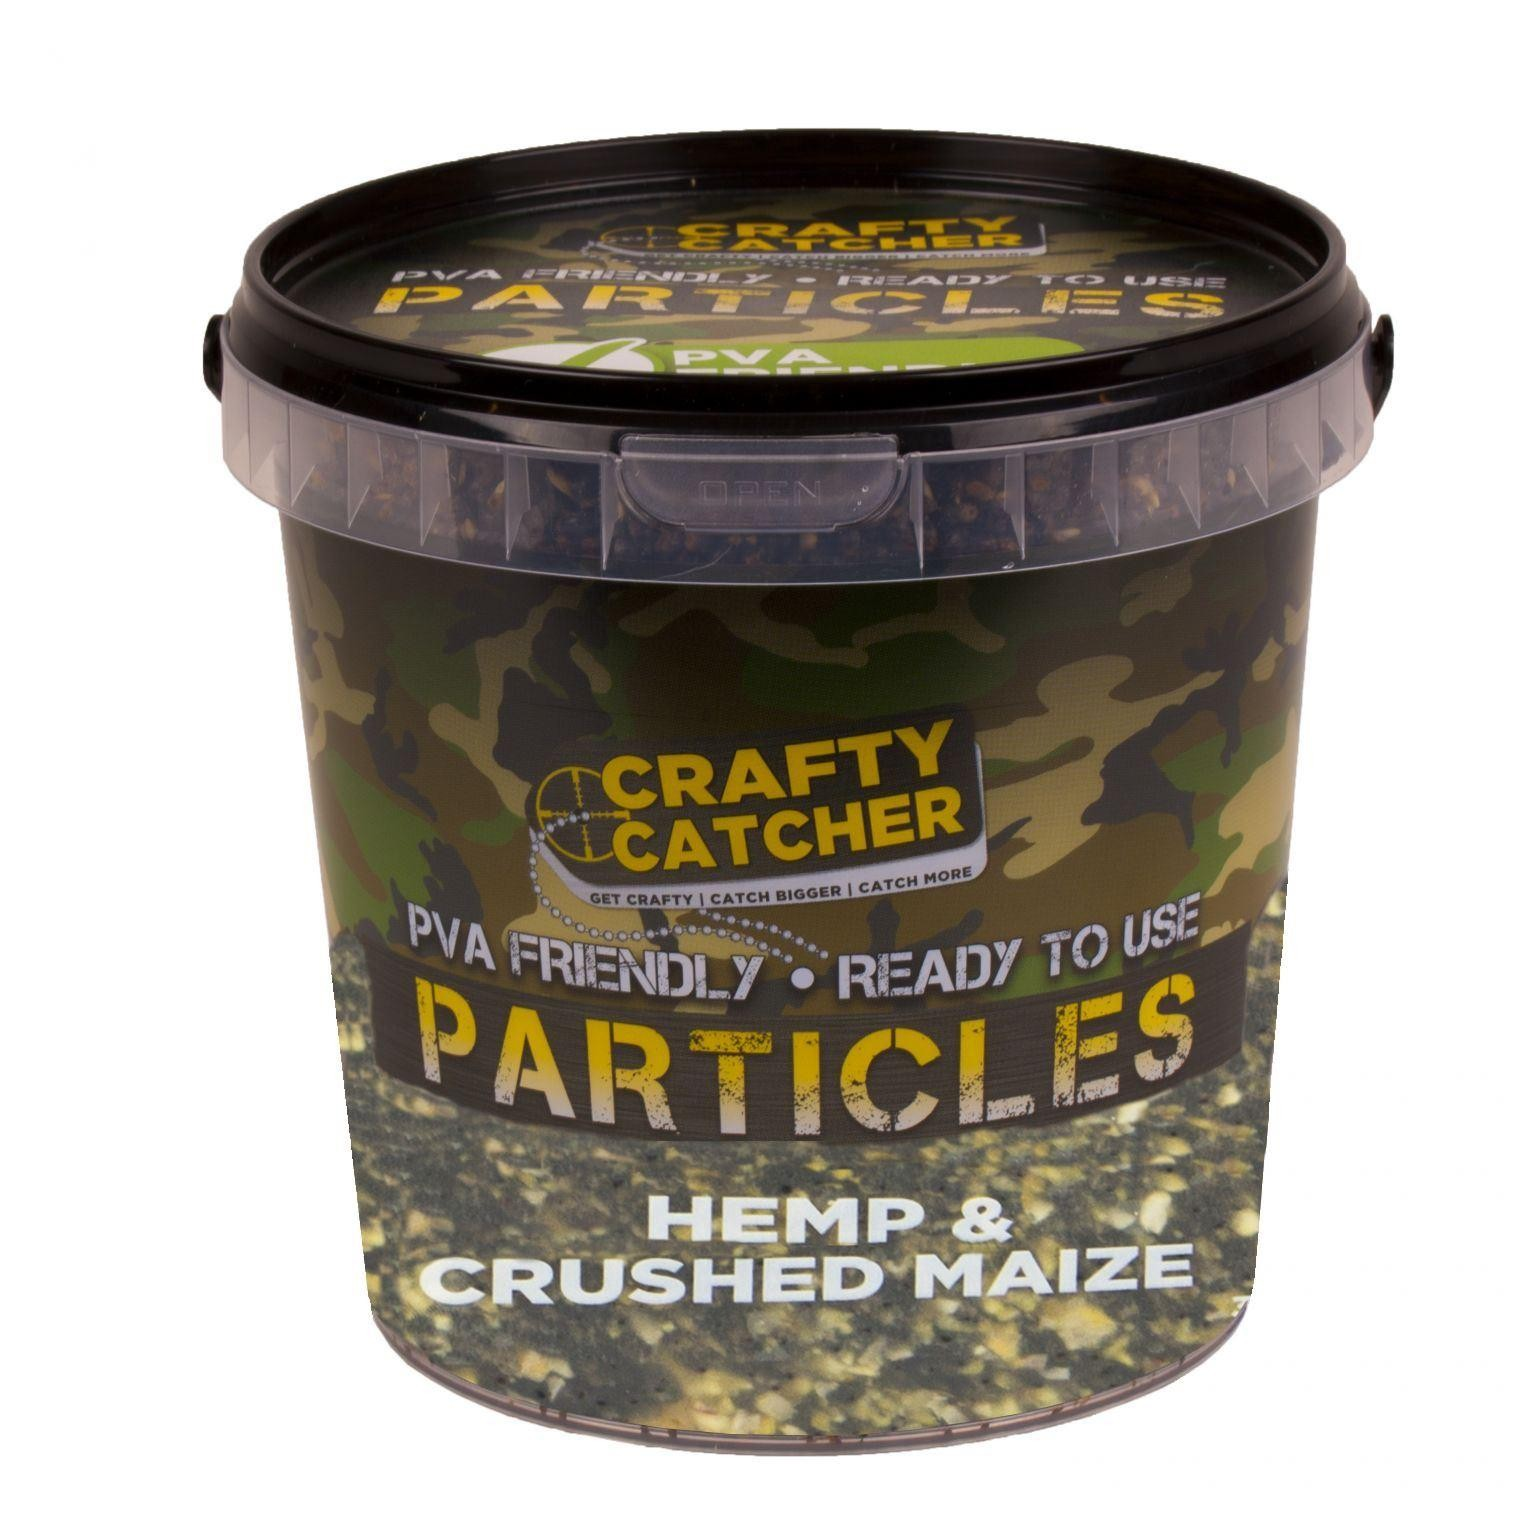 Crafty Catcher Hemp & Crushed Maize 1.1l Grab Pack Ready To Use